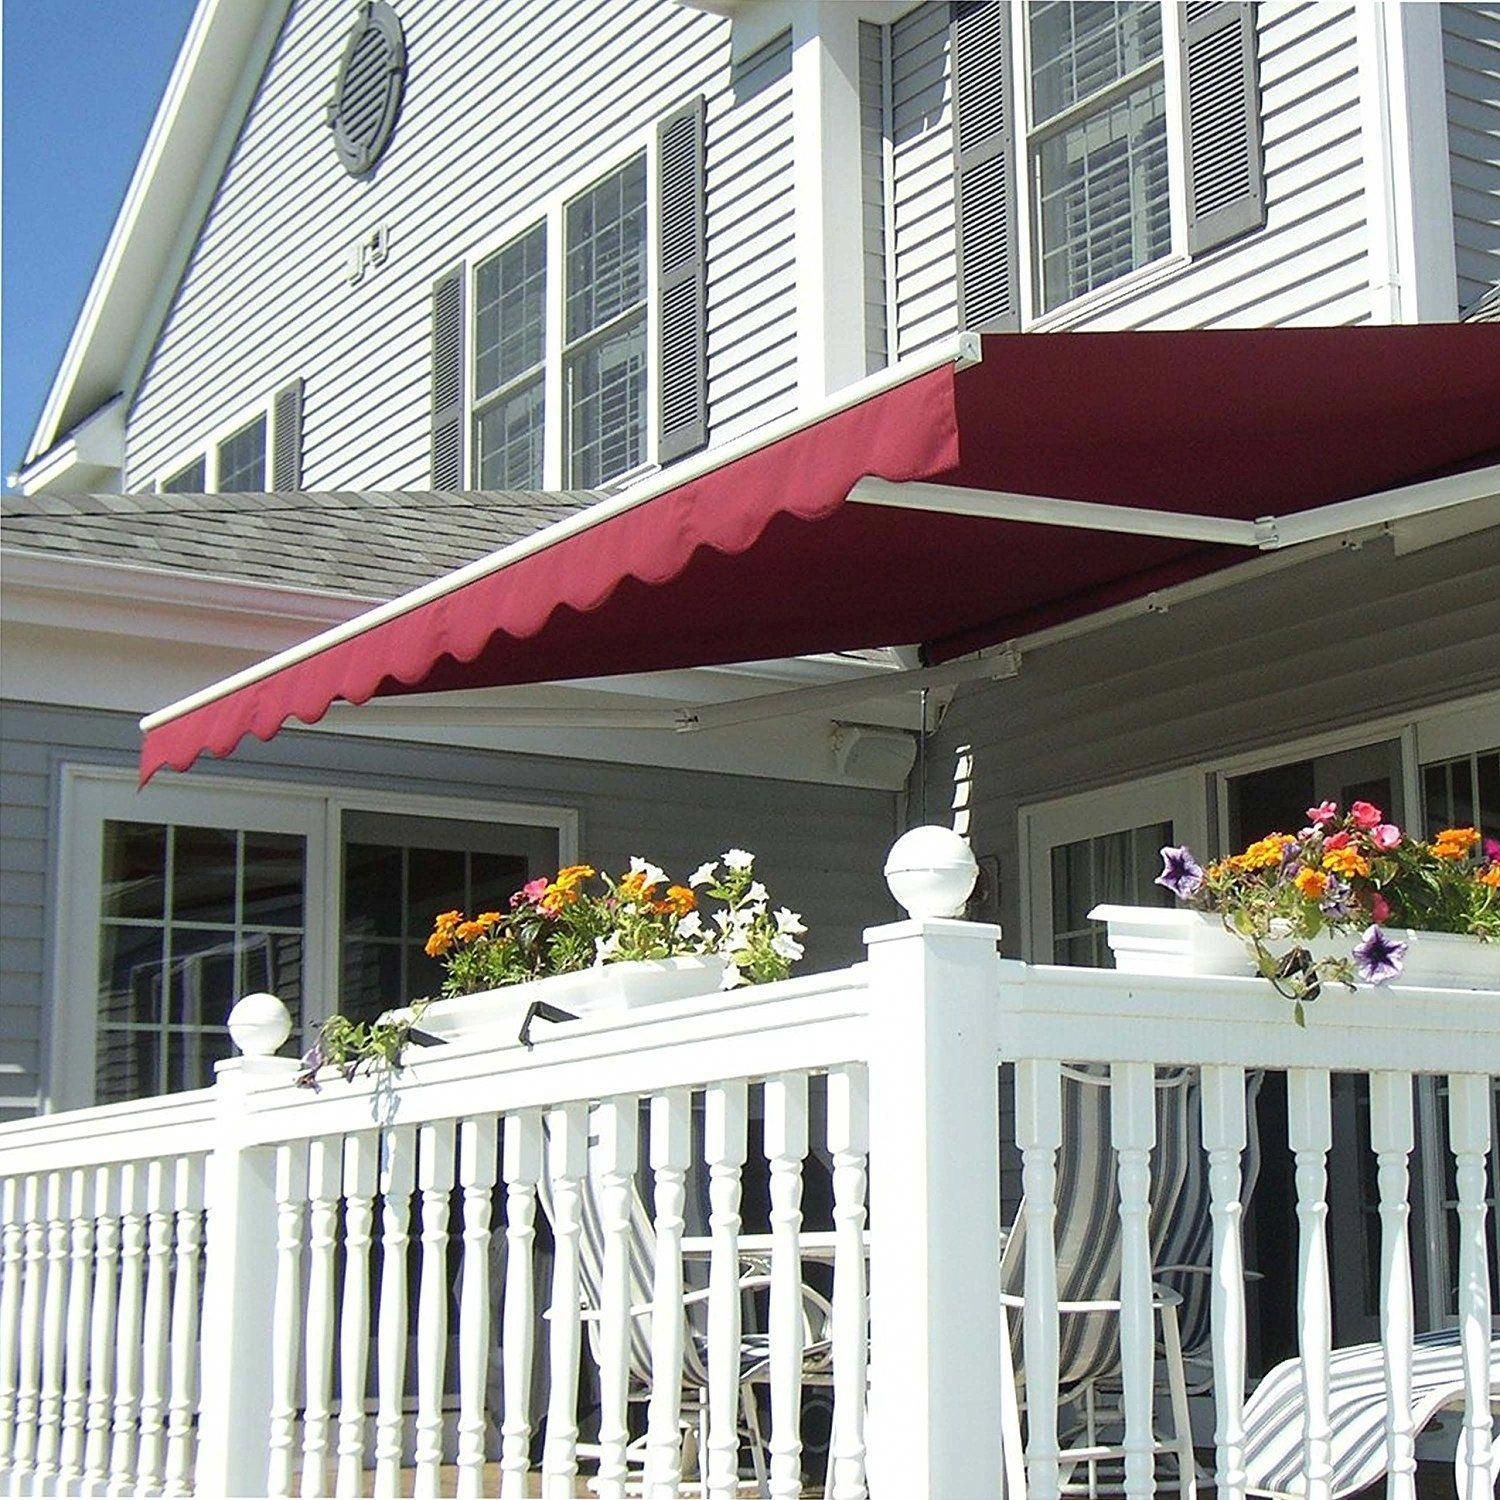 Menards Pergola Review Pergolaondeckideas Pergolaalternatives Patio Awning Patio Design Pergola Shade